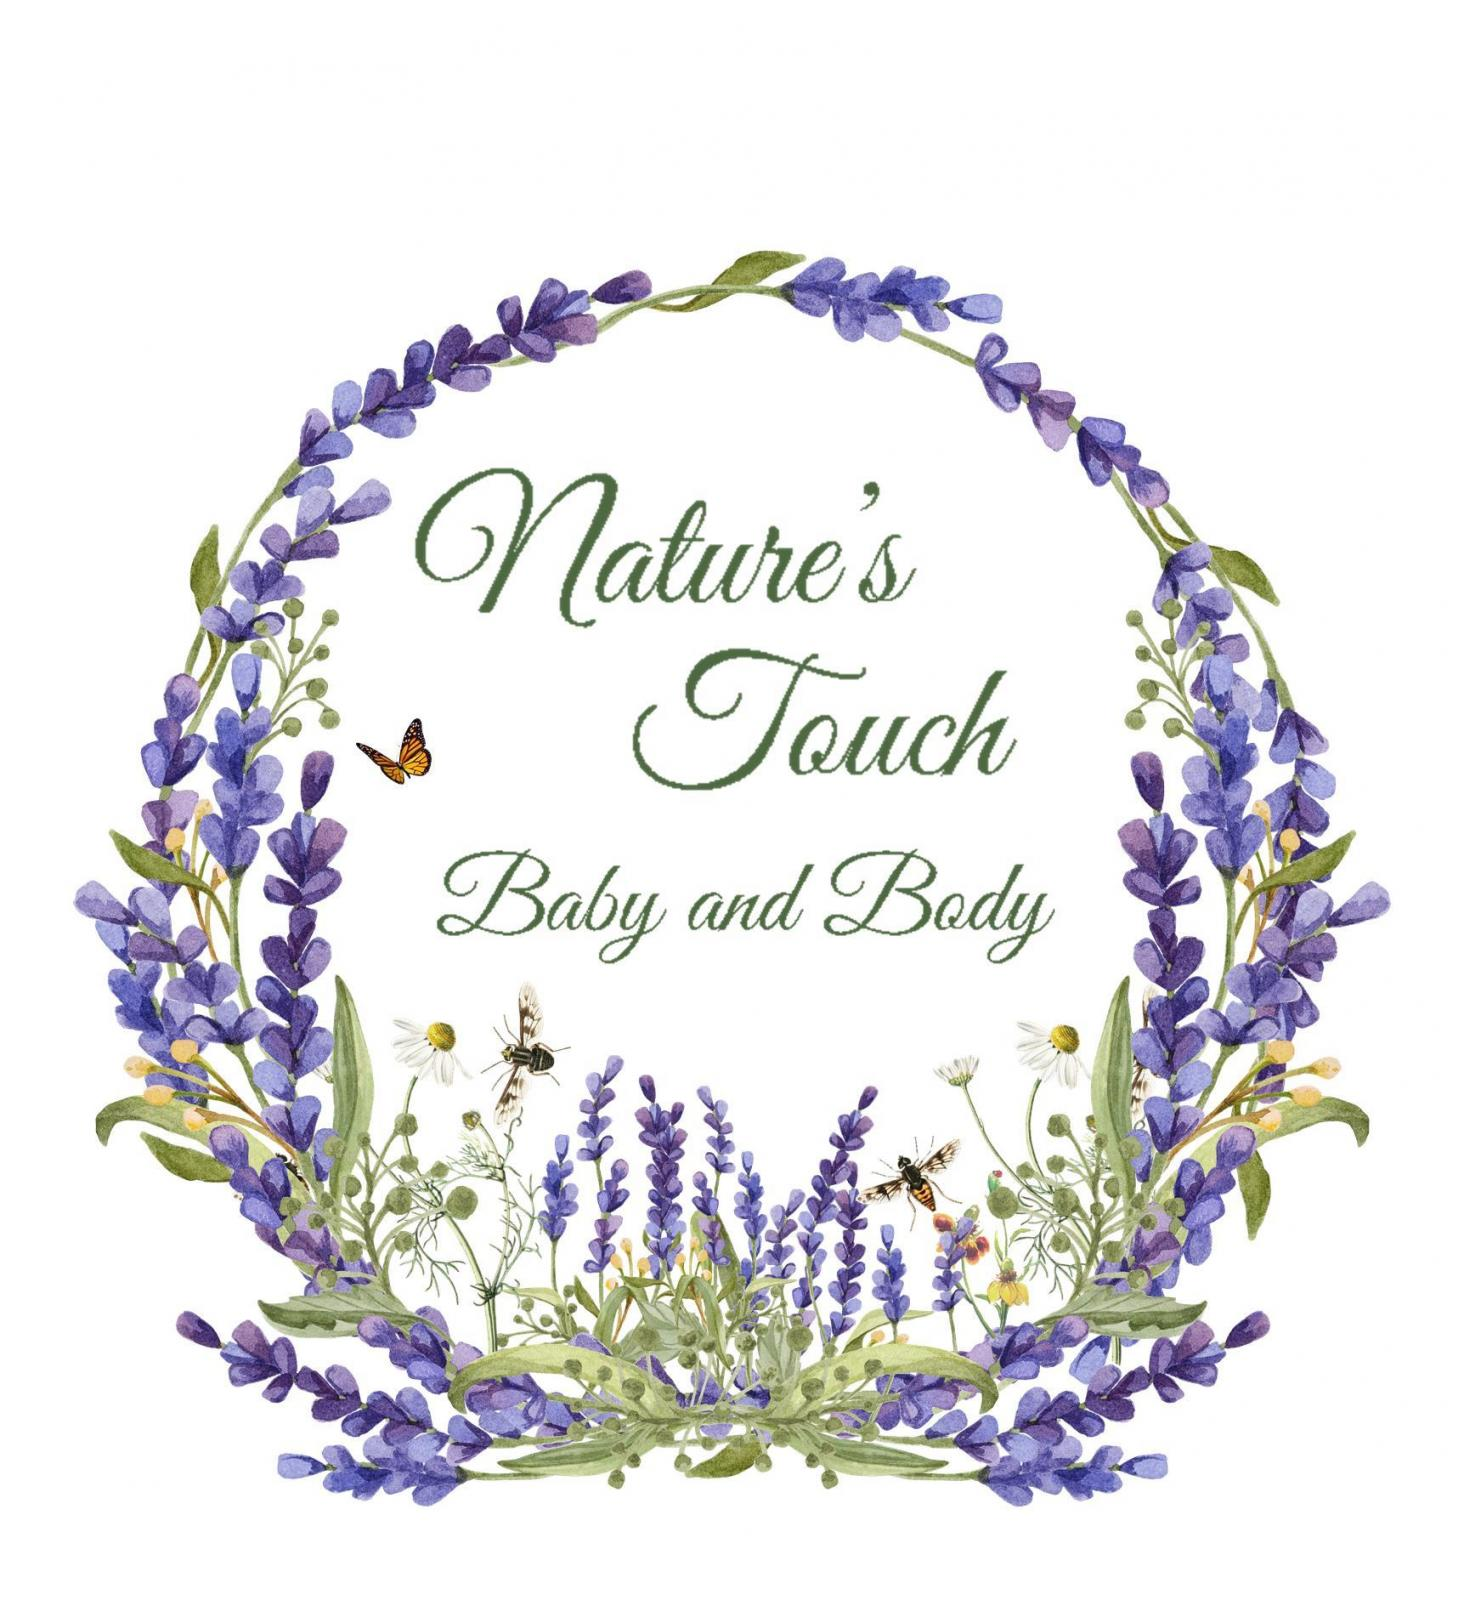 Nature's Touch Baby & Body's logo